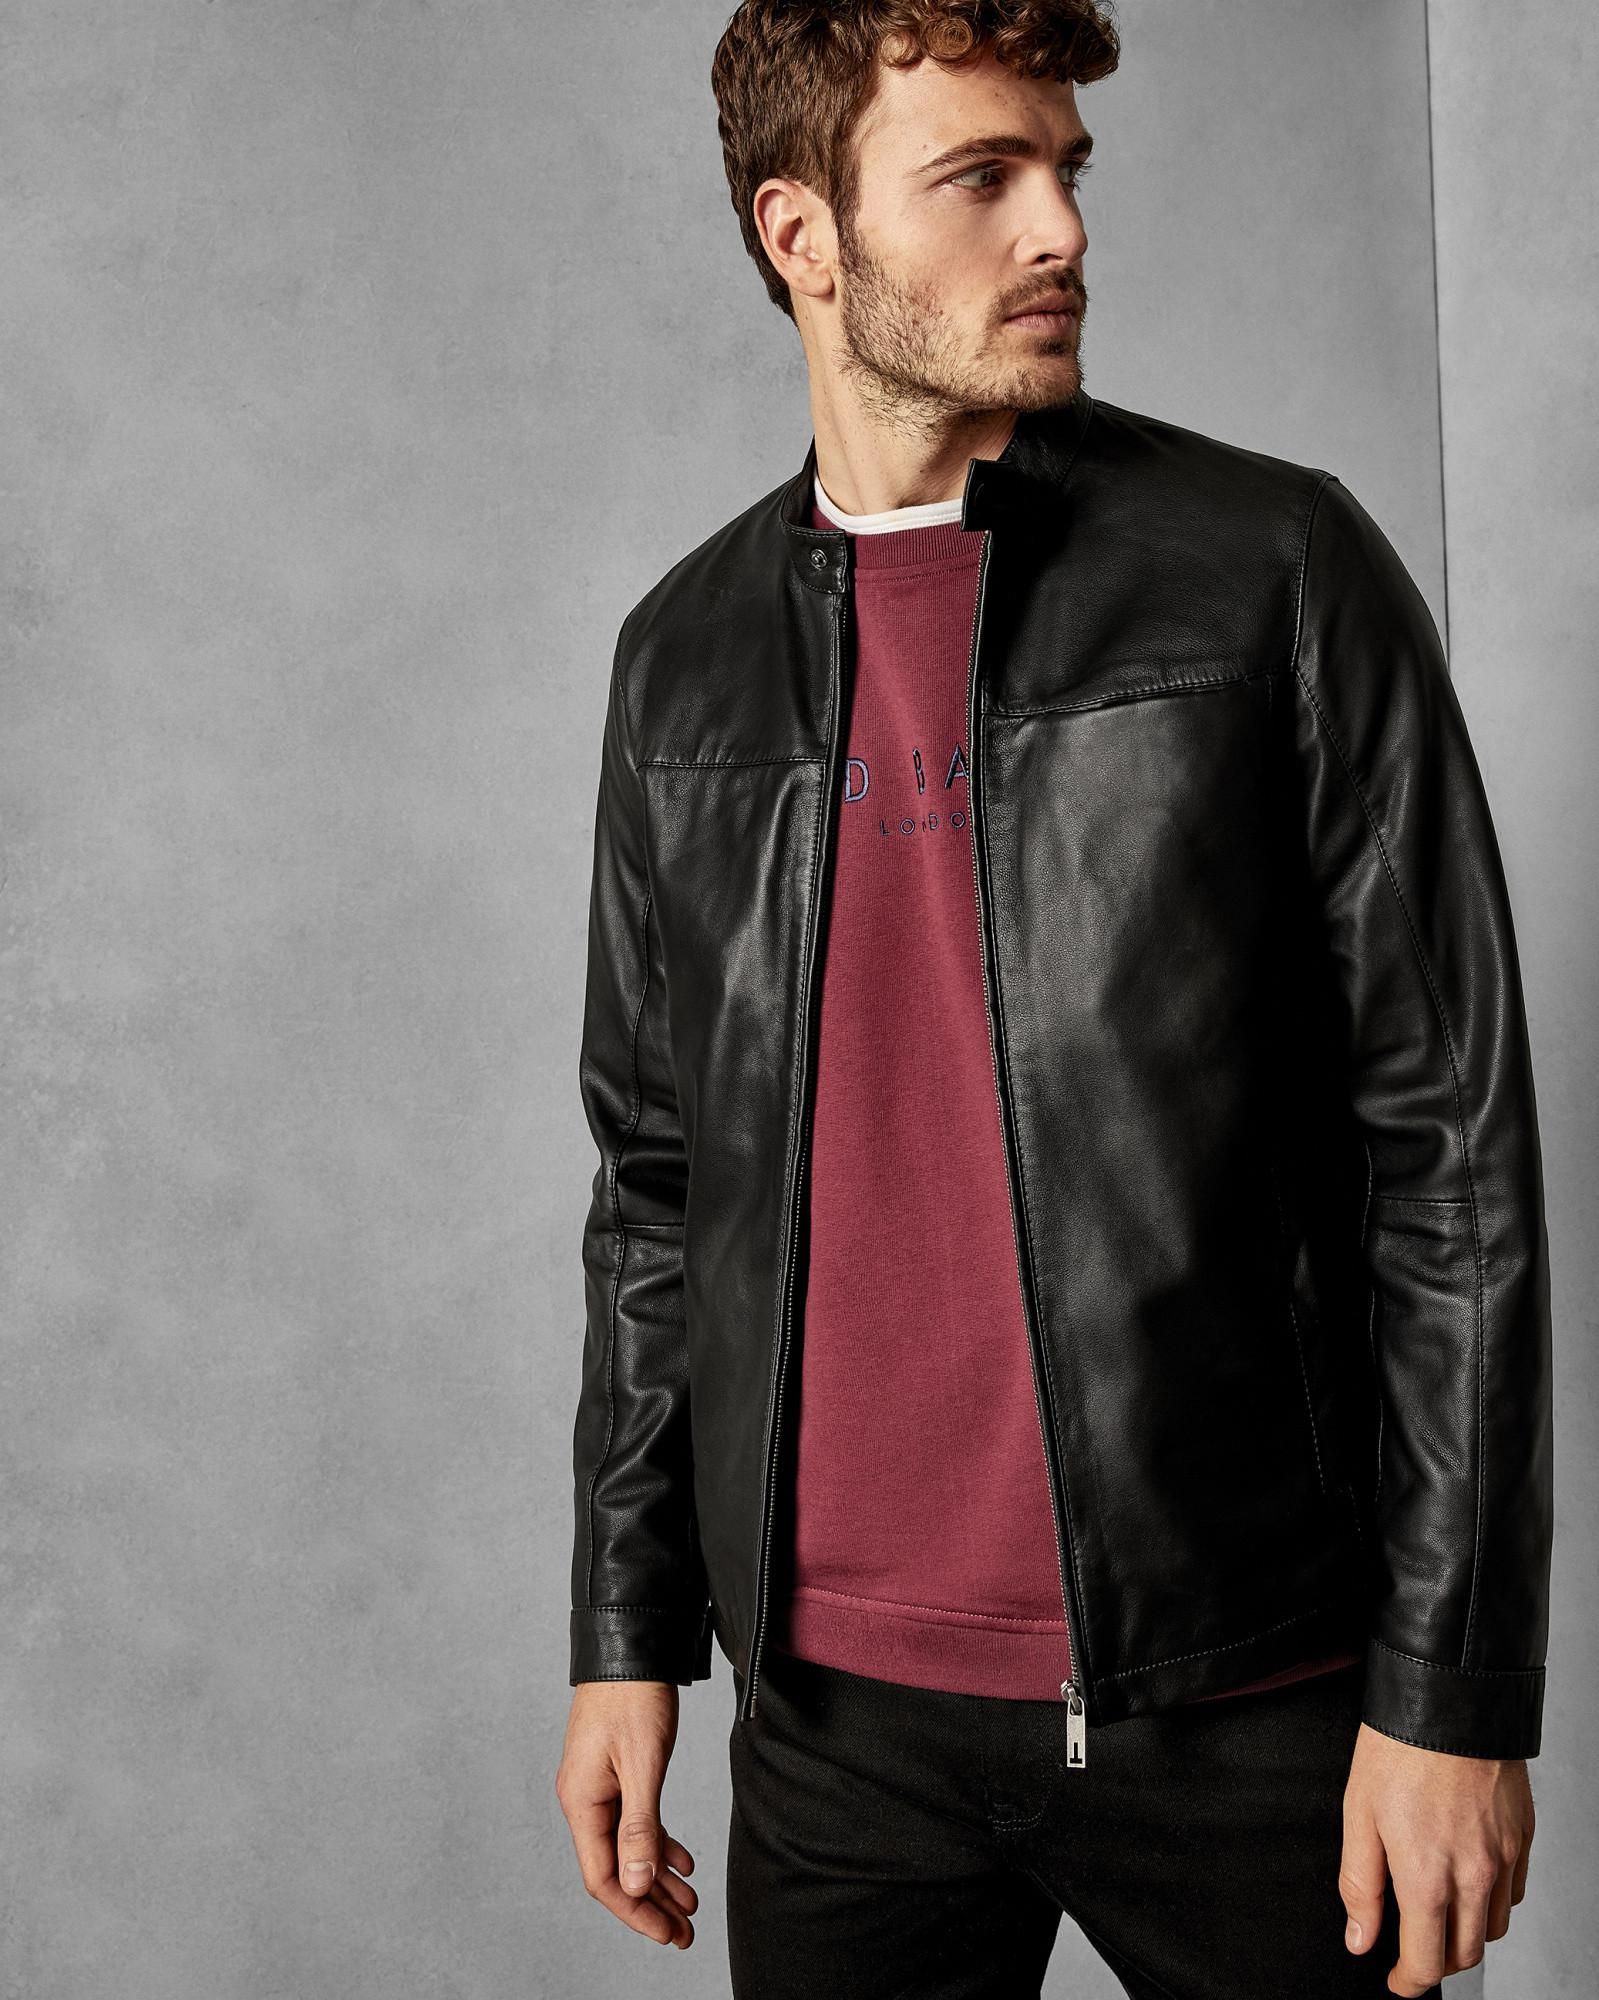 0df6bcbc1d7e00 Ted Baker Leather Jacket in Black for Men - Lyst